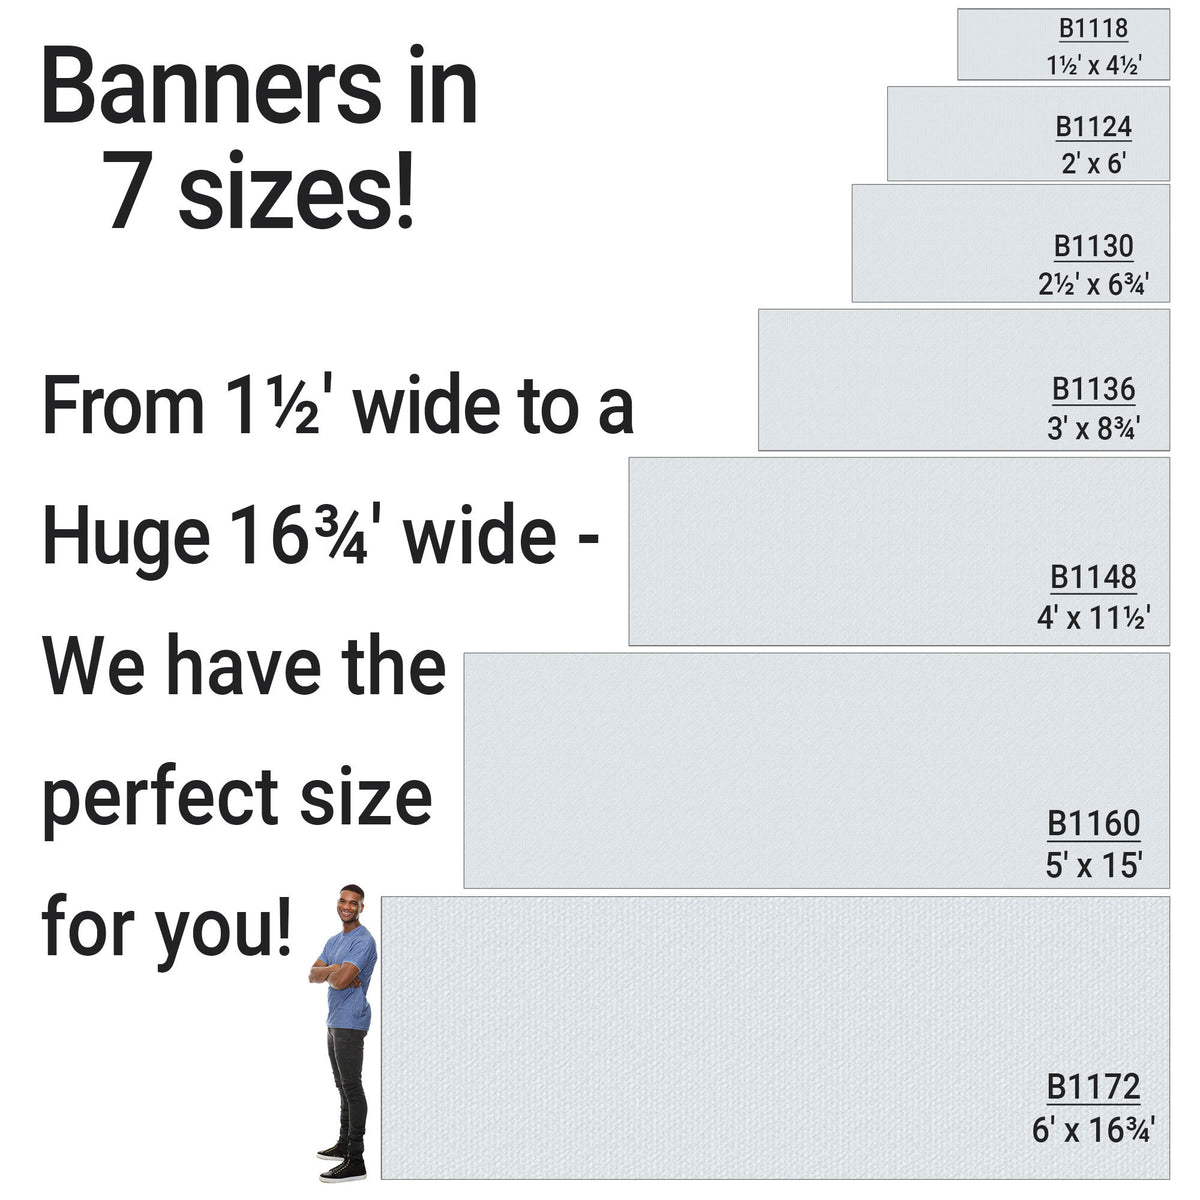 Accomplished Athlete Personalized Banner